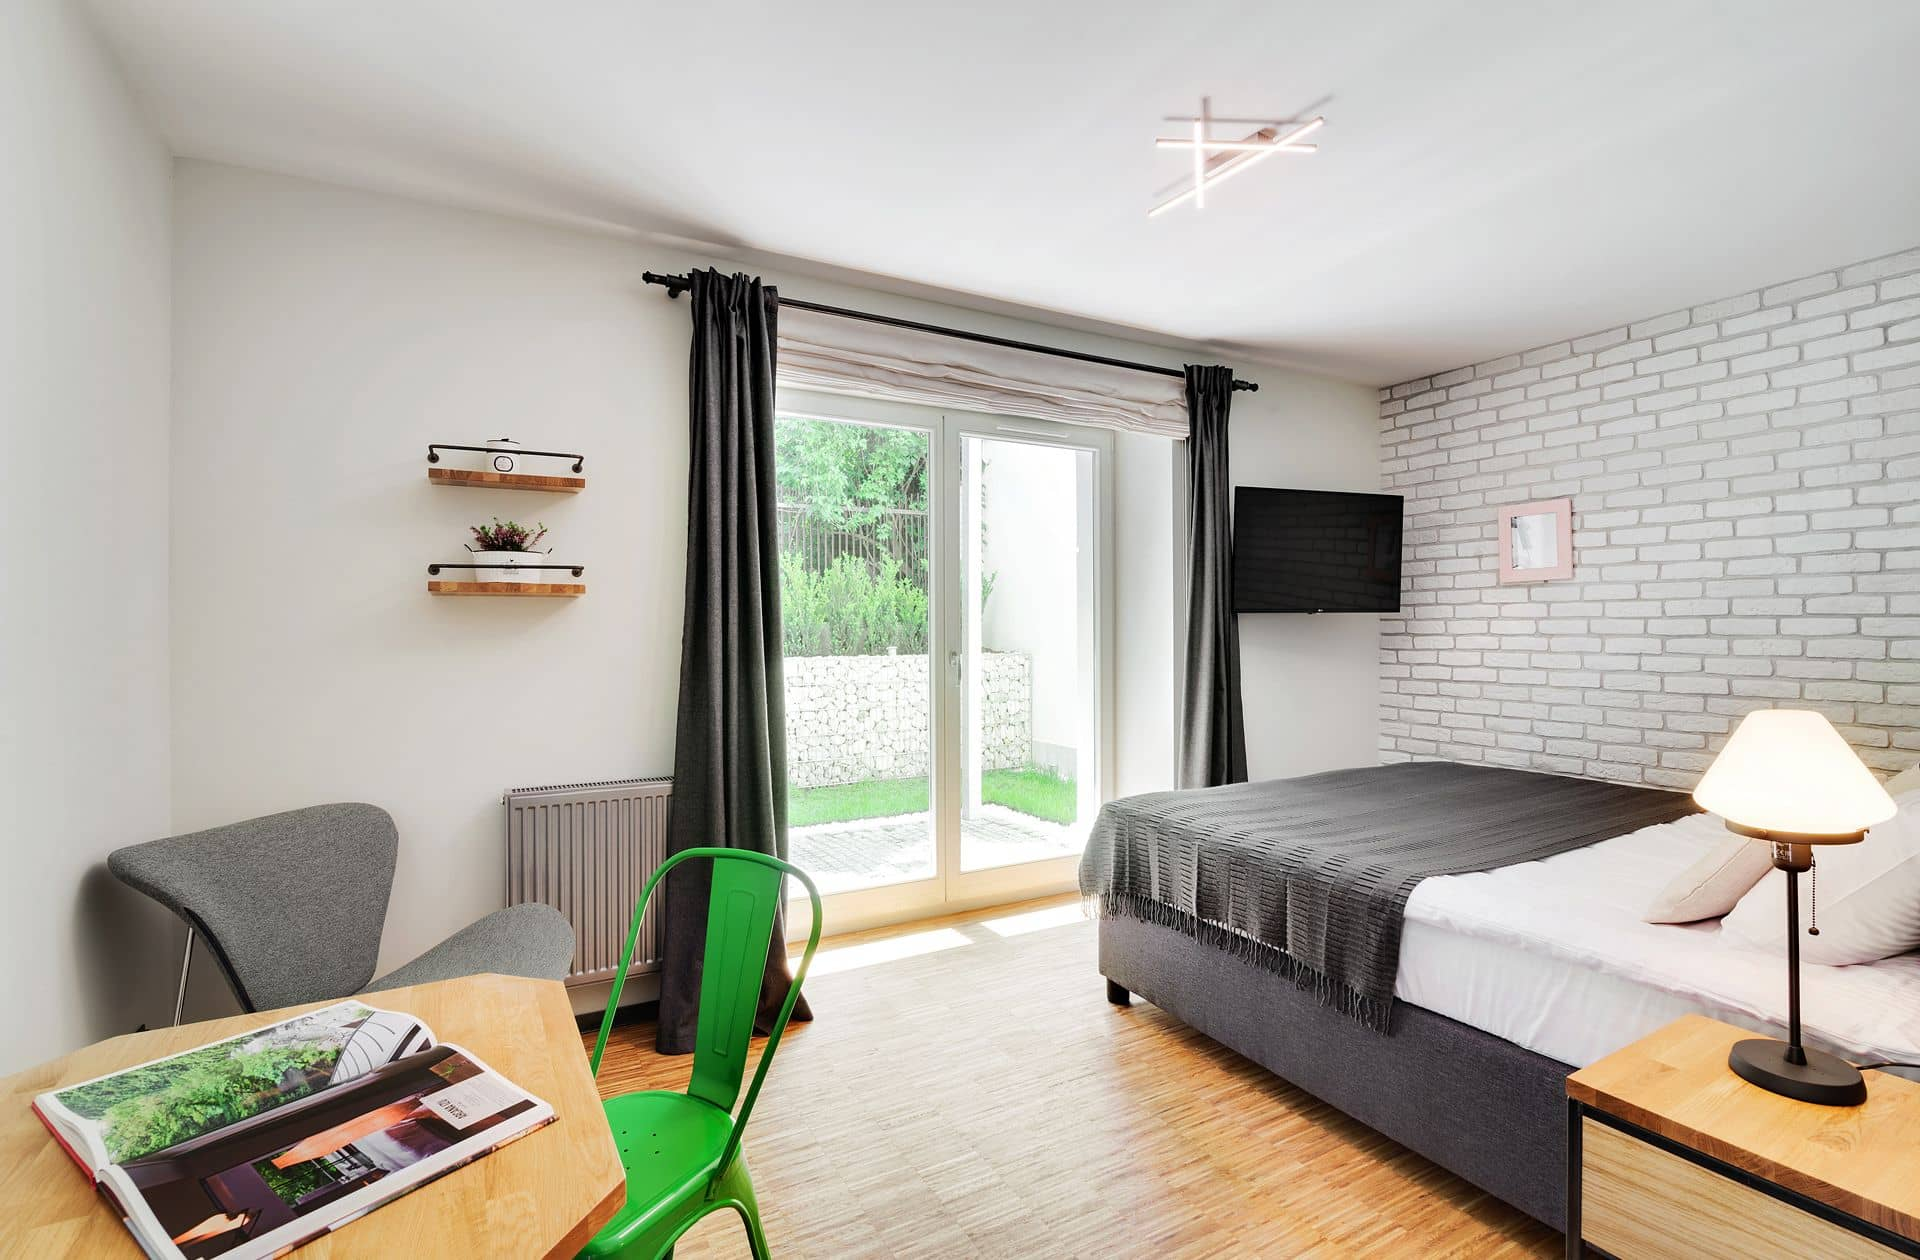 wellwellaparthotel.pl - apartments in Krakow